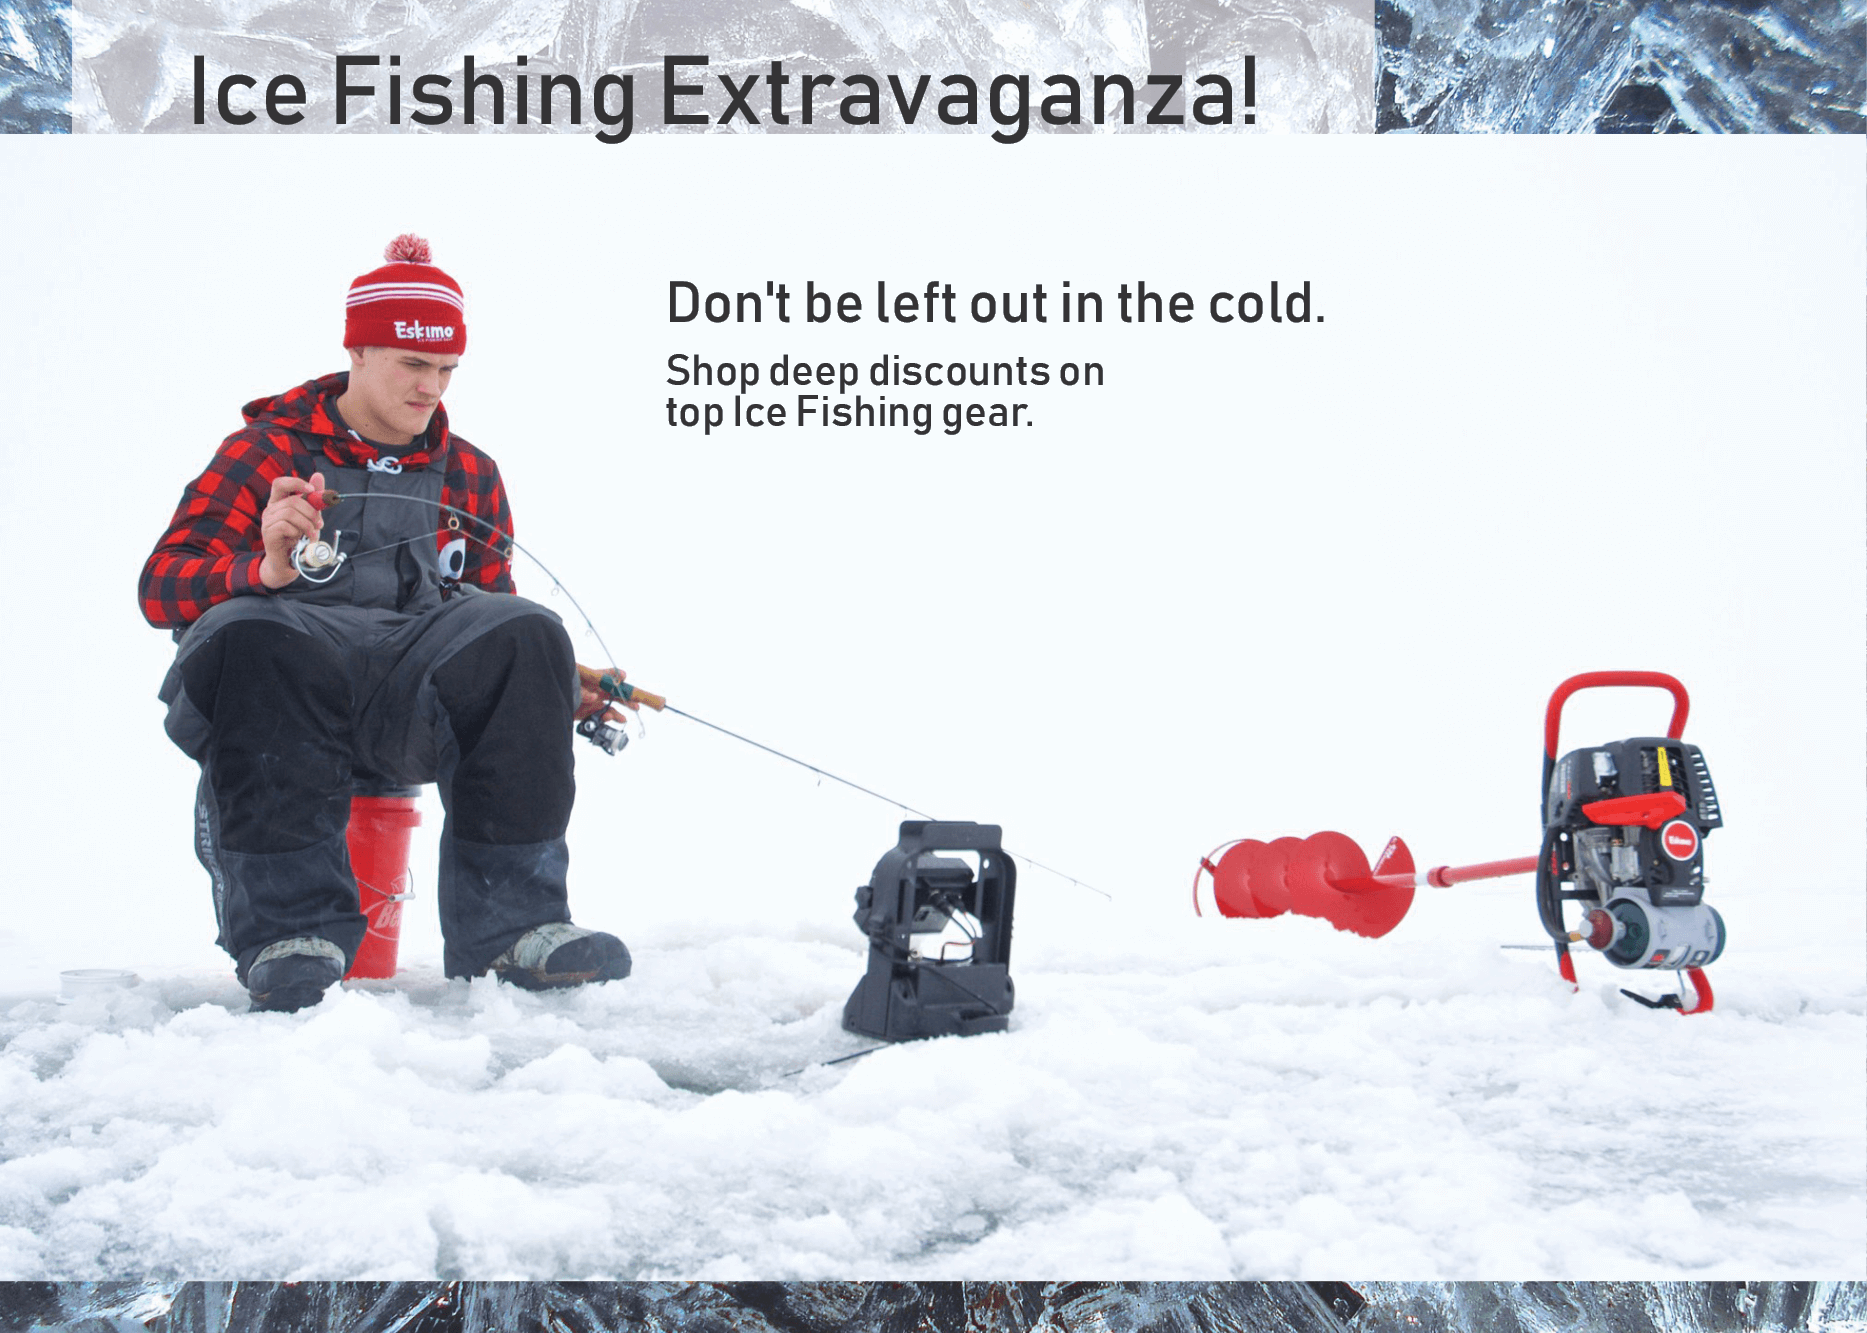 Shop the Ice Fishing Extravaganza at FishUSA, America's Tackle Shop!